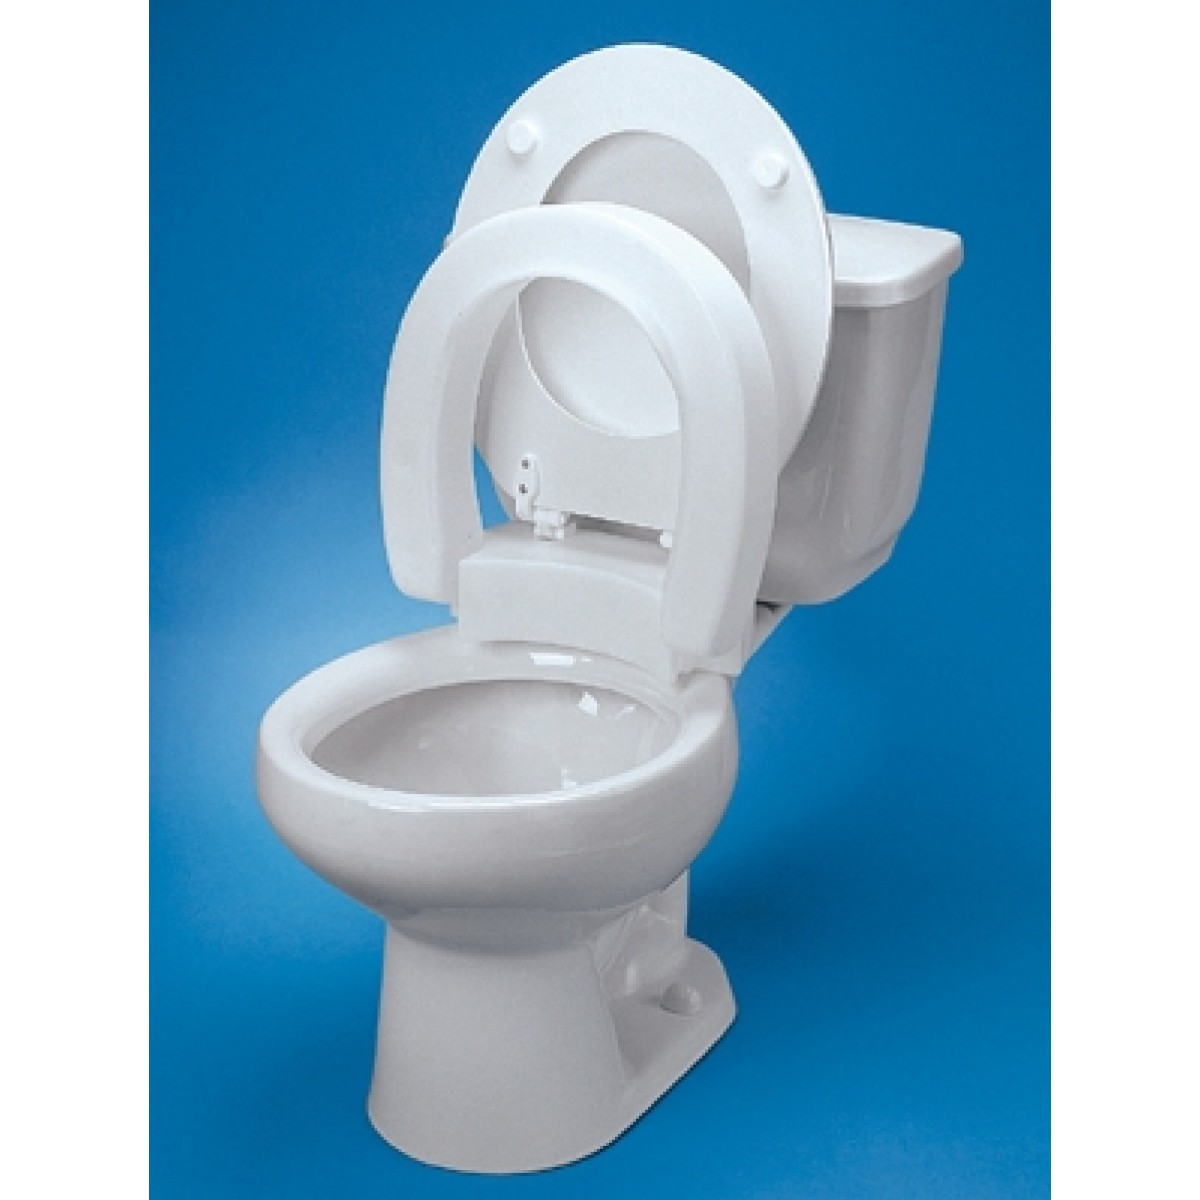 Tall Ette Elevated Hinged Toilet Seat Standard 725711000